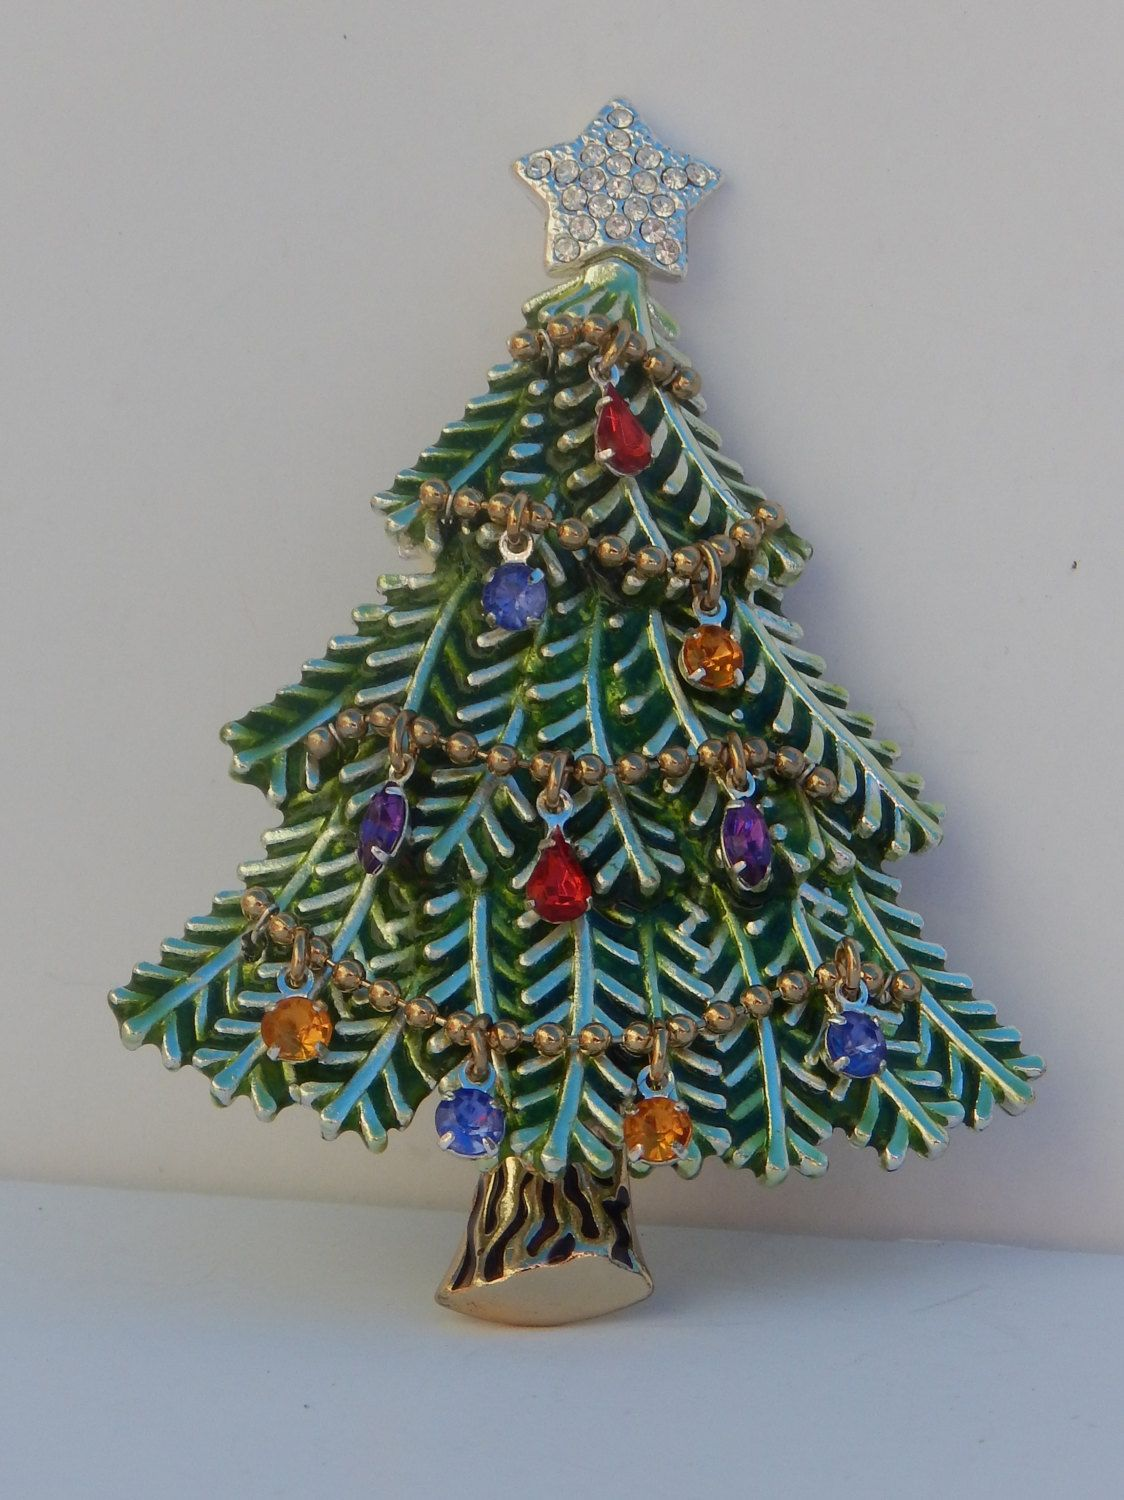 c4914819402 Shimmering Garland AVON Christmas Tree Pin Brooch - Dangling Rhinestone  Ornaments by GreatPretenders on Etsy